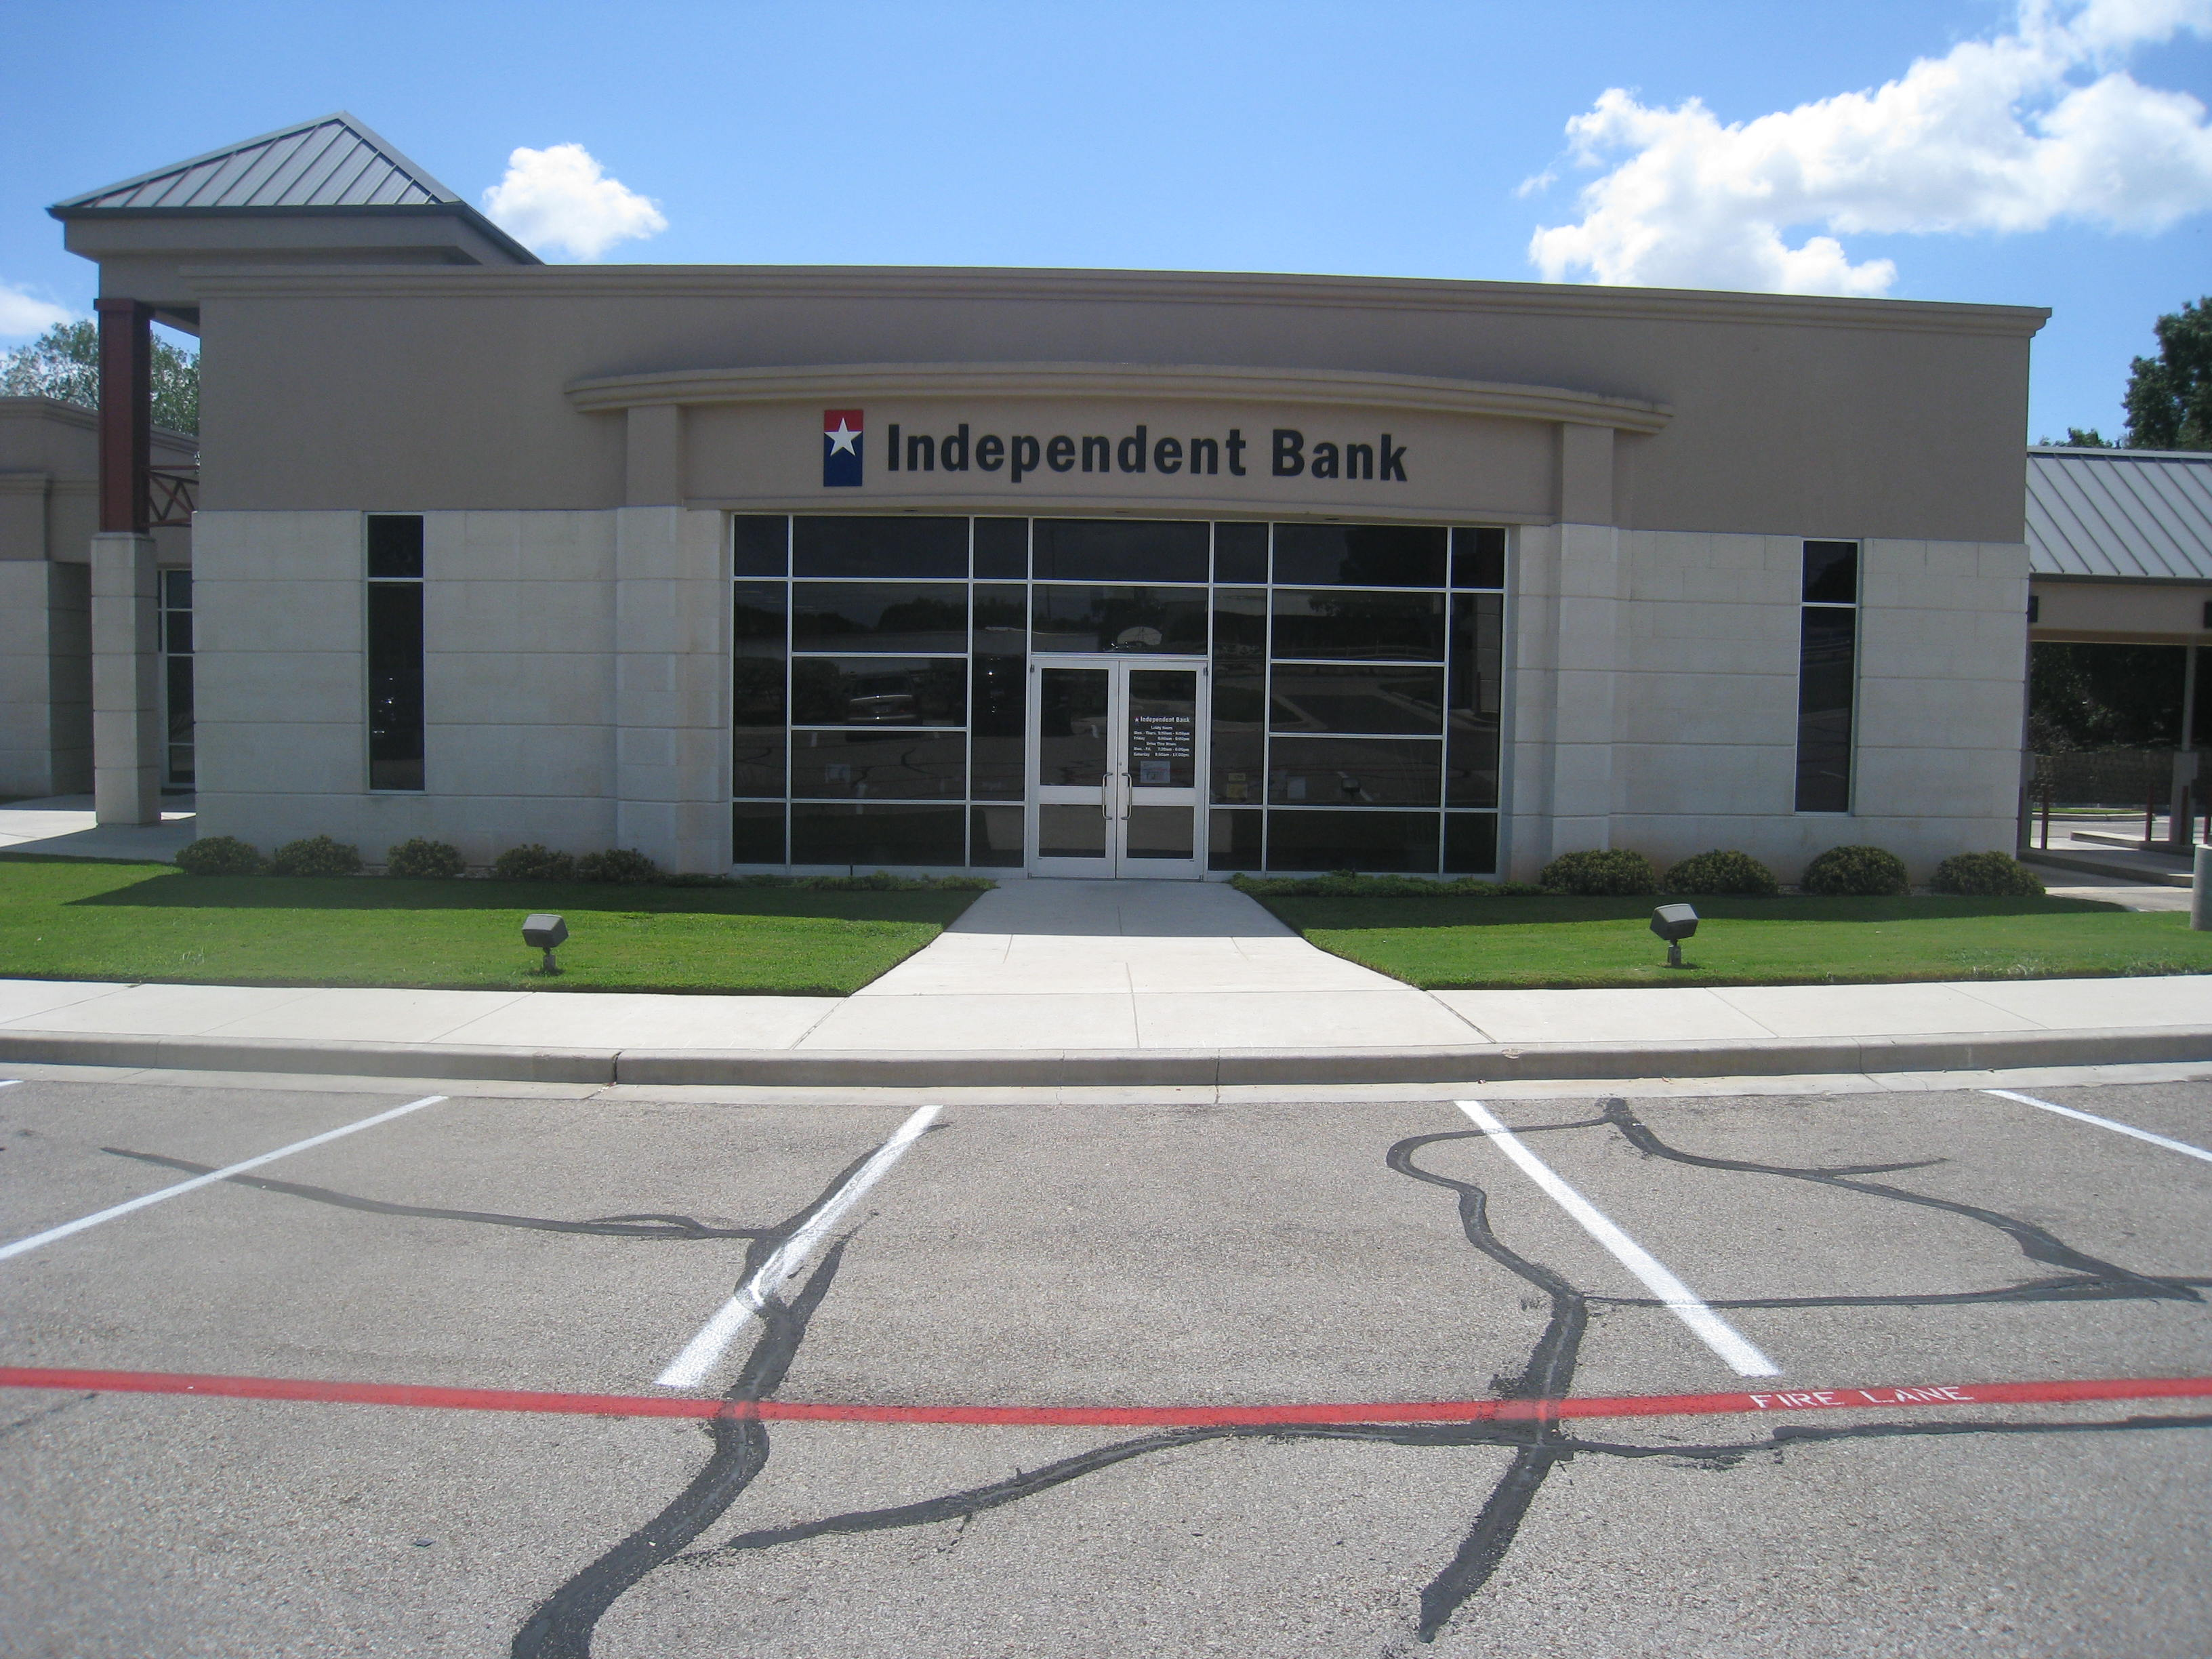 Independent Bank image 0